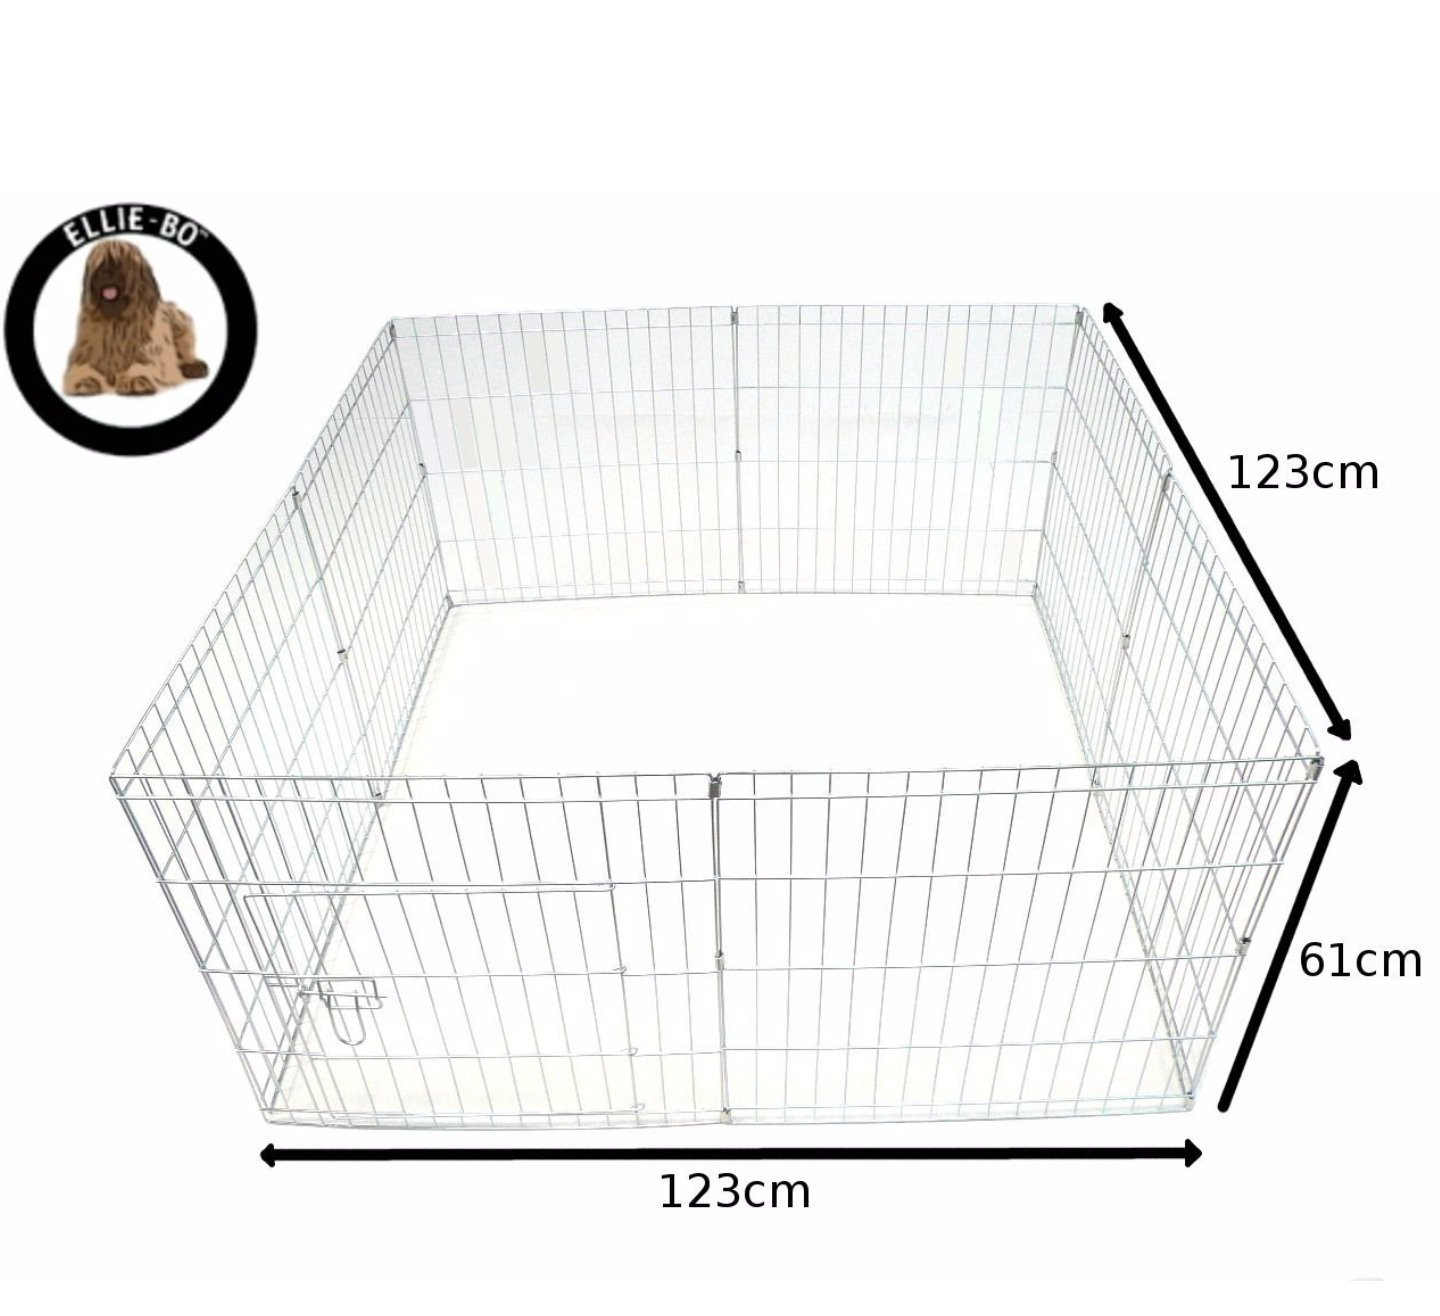 Ellie-Bo Easy-Up Puppy Rabbit Play Pen, 76 cm, Silver, 8-Piece by Ellie-Bo (Image #1)